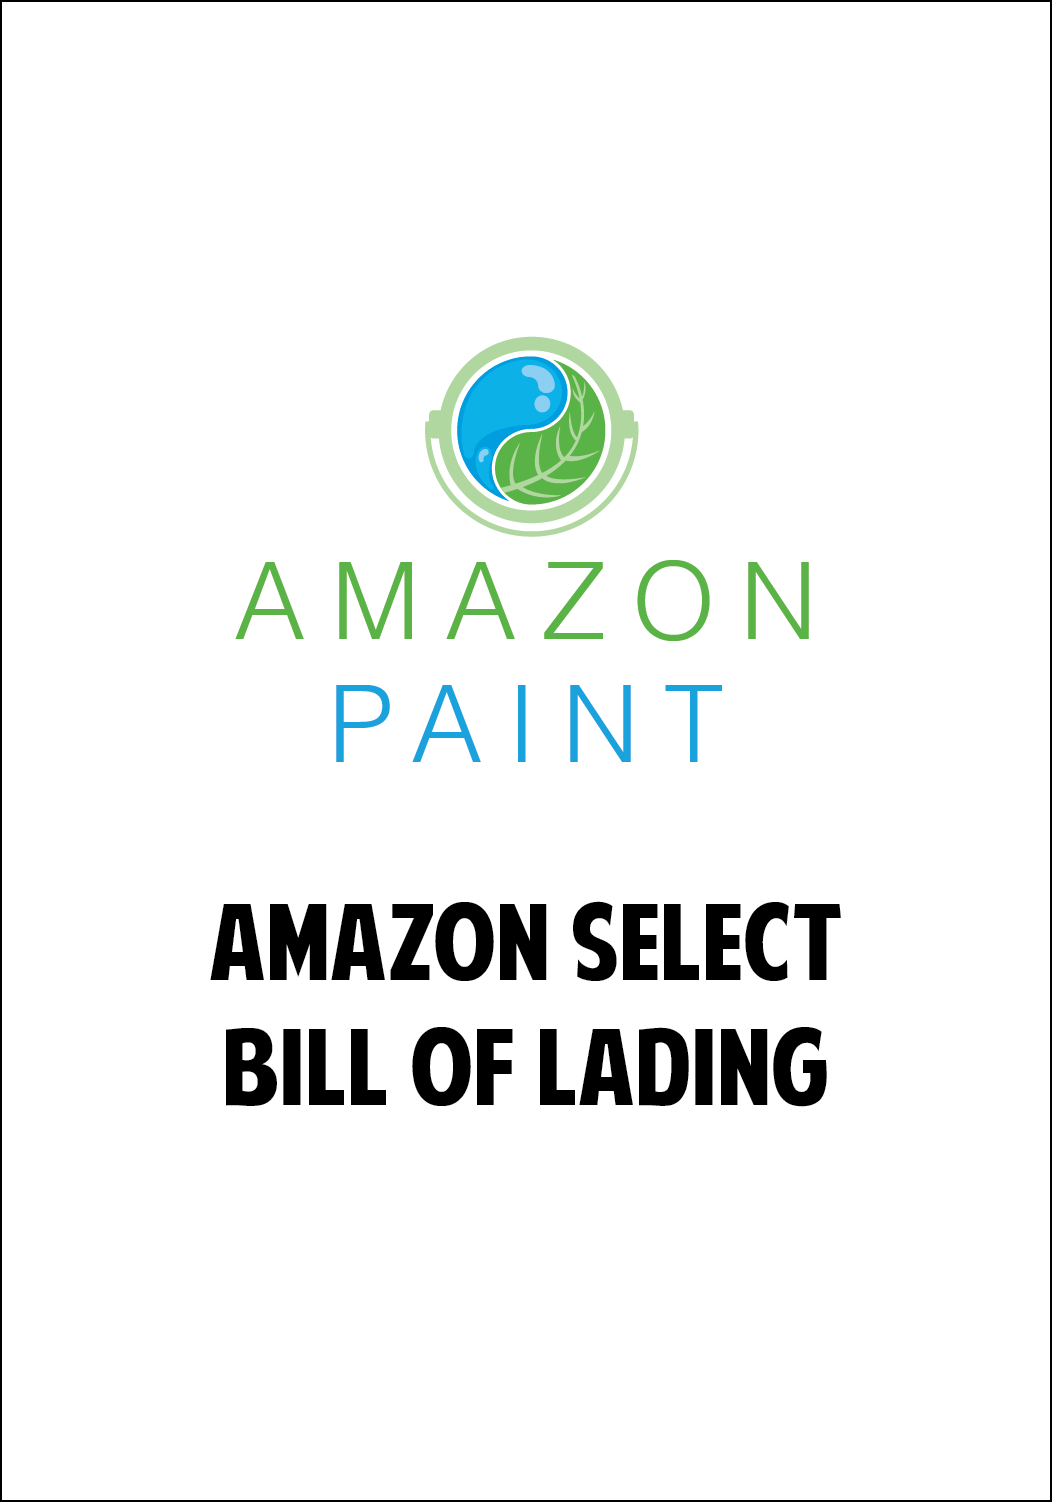 Amazon Select Bill of Lading